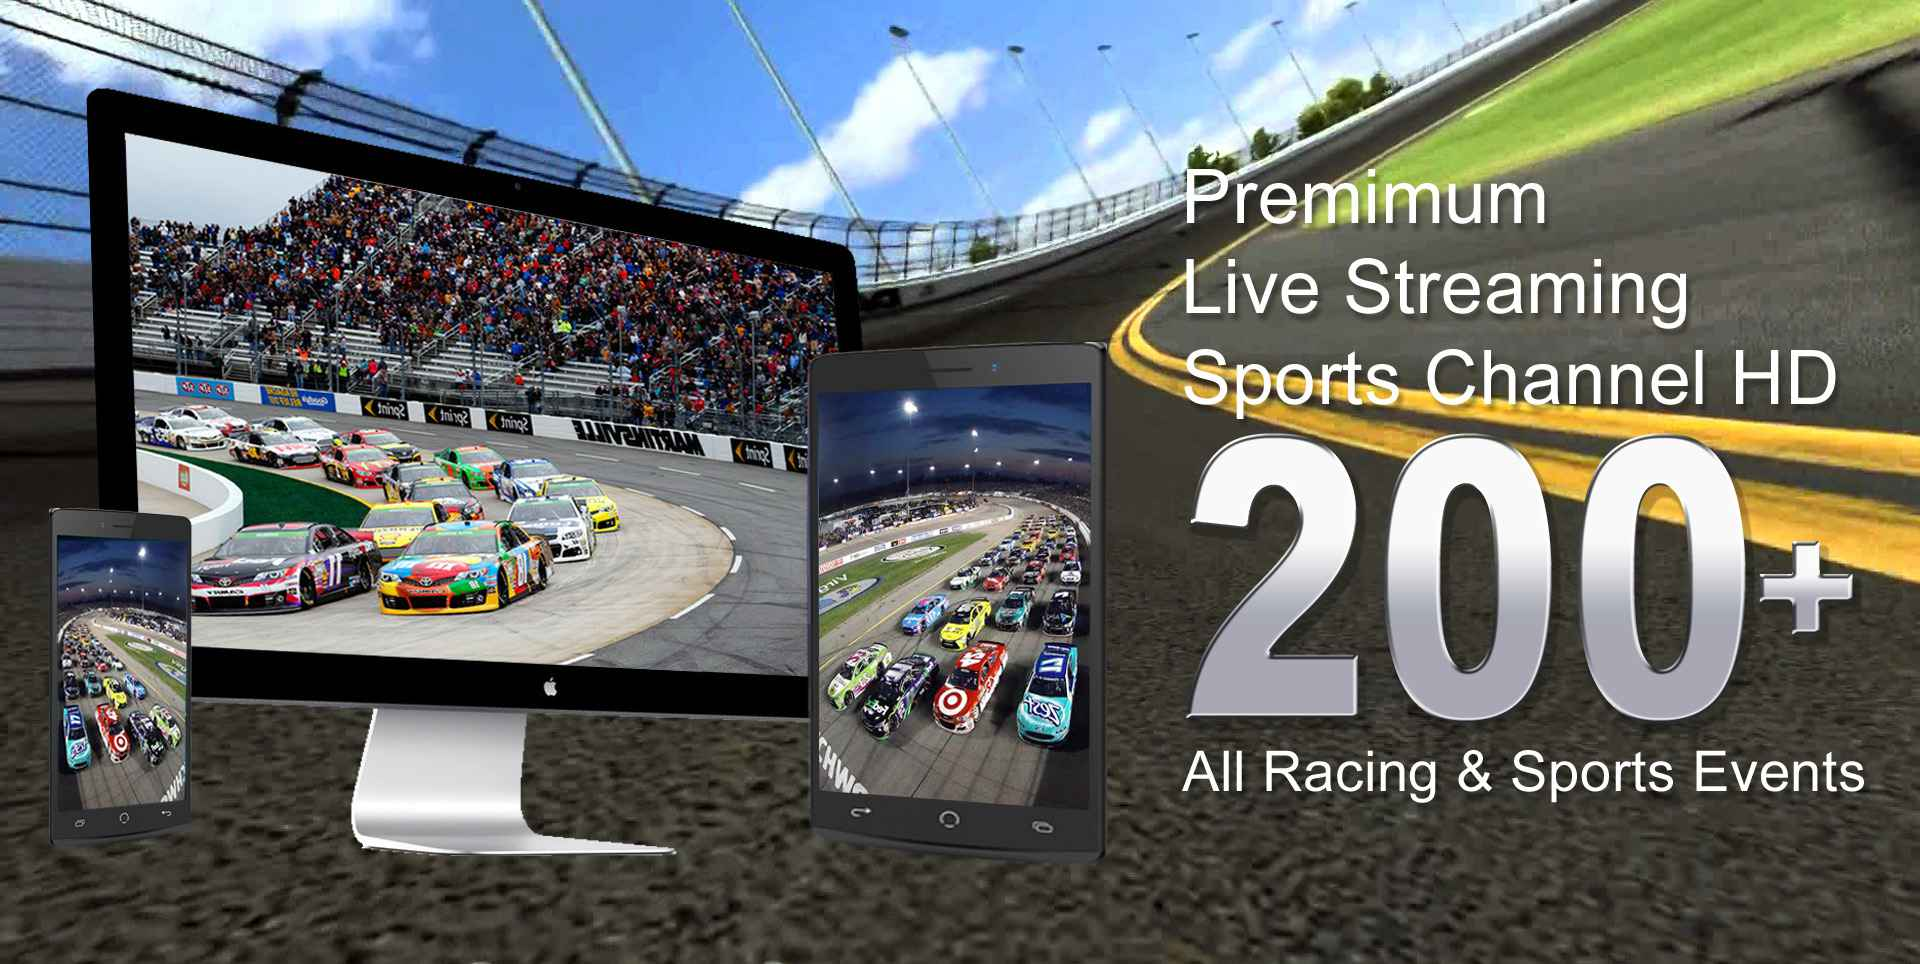 NASCAR Miami Sprint Cup Series Live stream